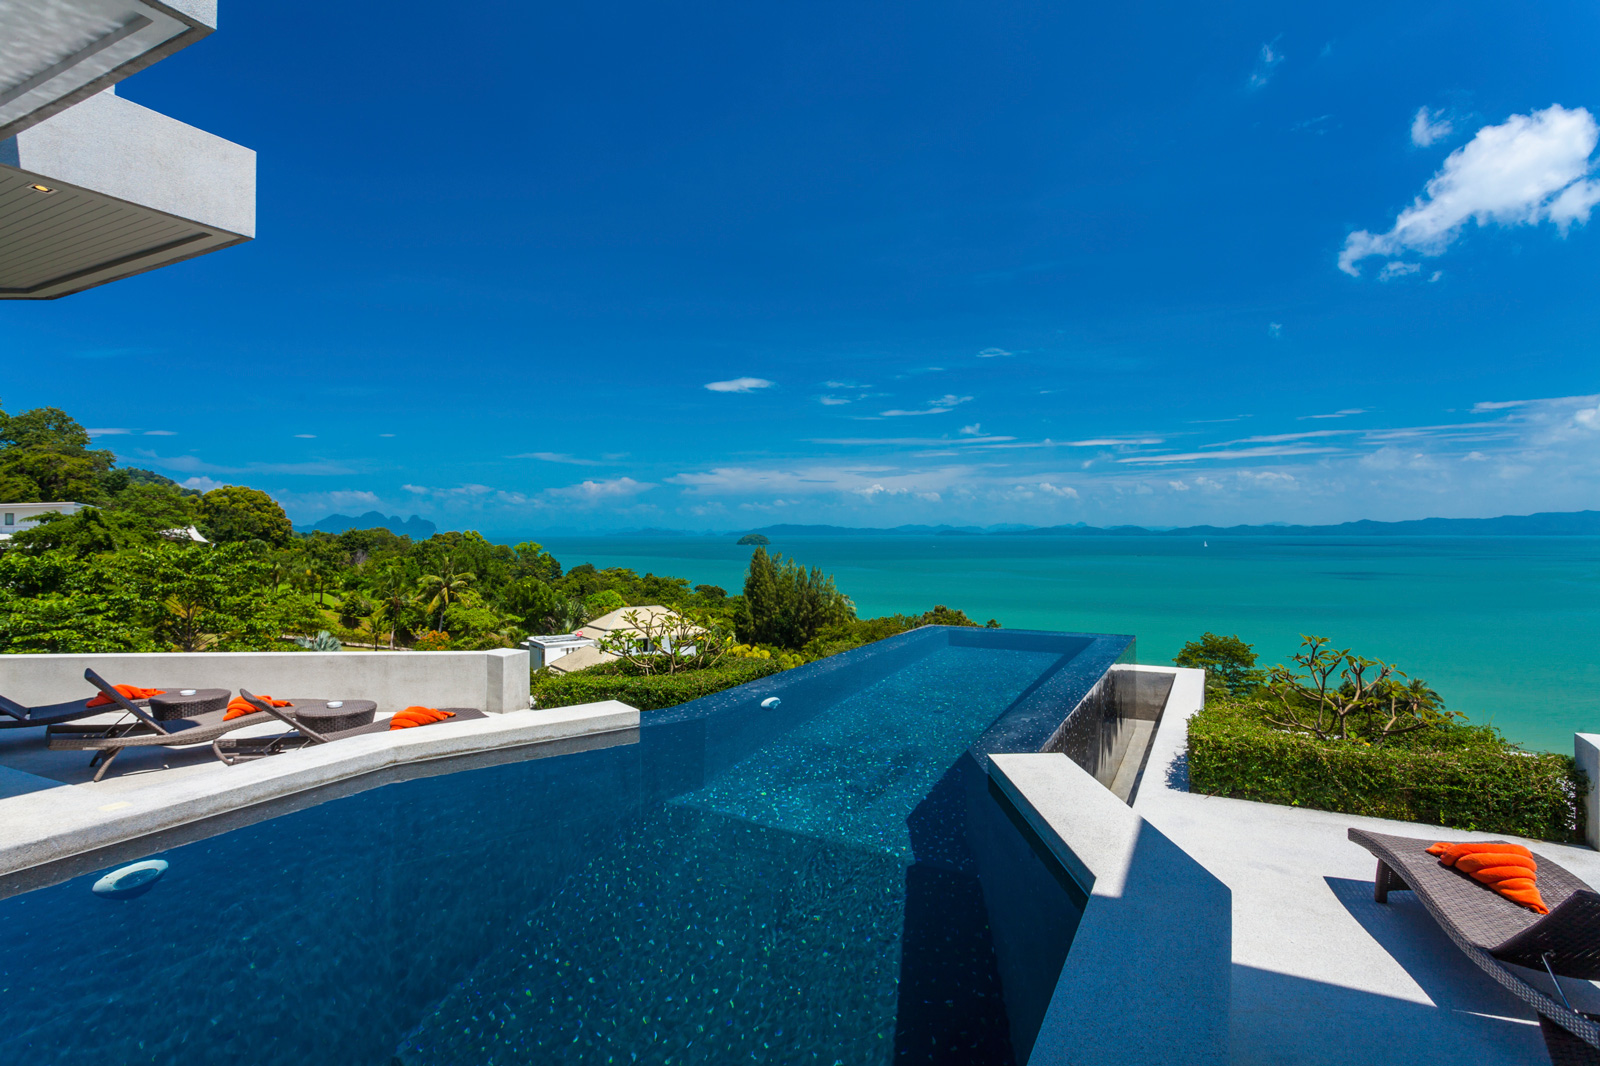 Swimming pool area villa leelawadee phuket - Swimming pool area ...